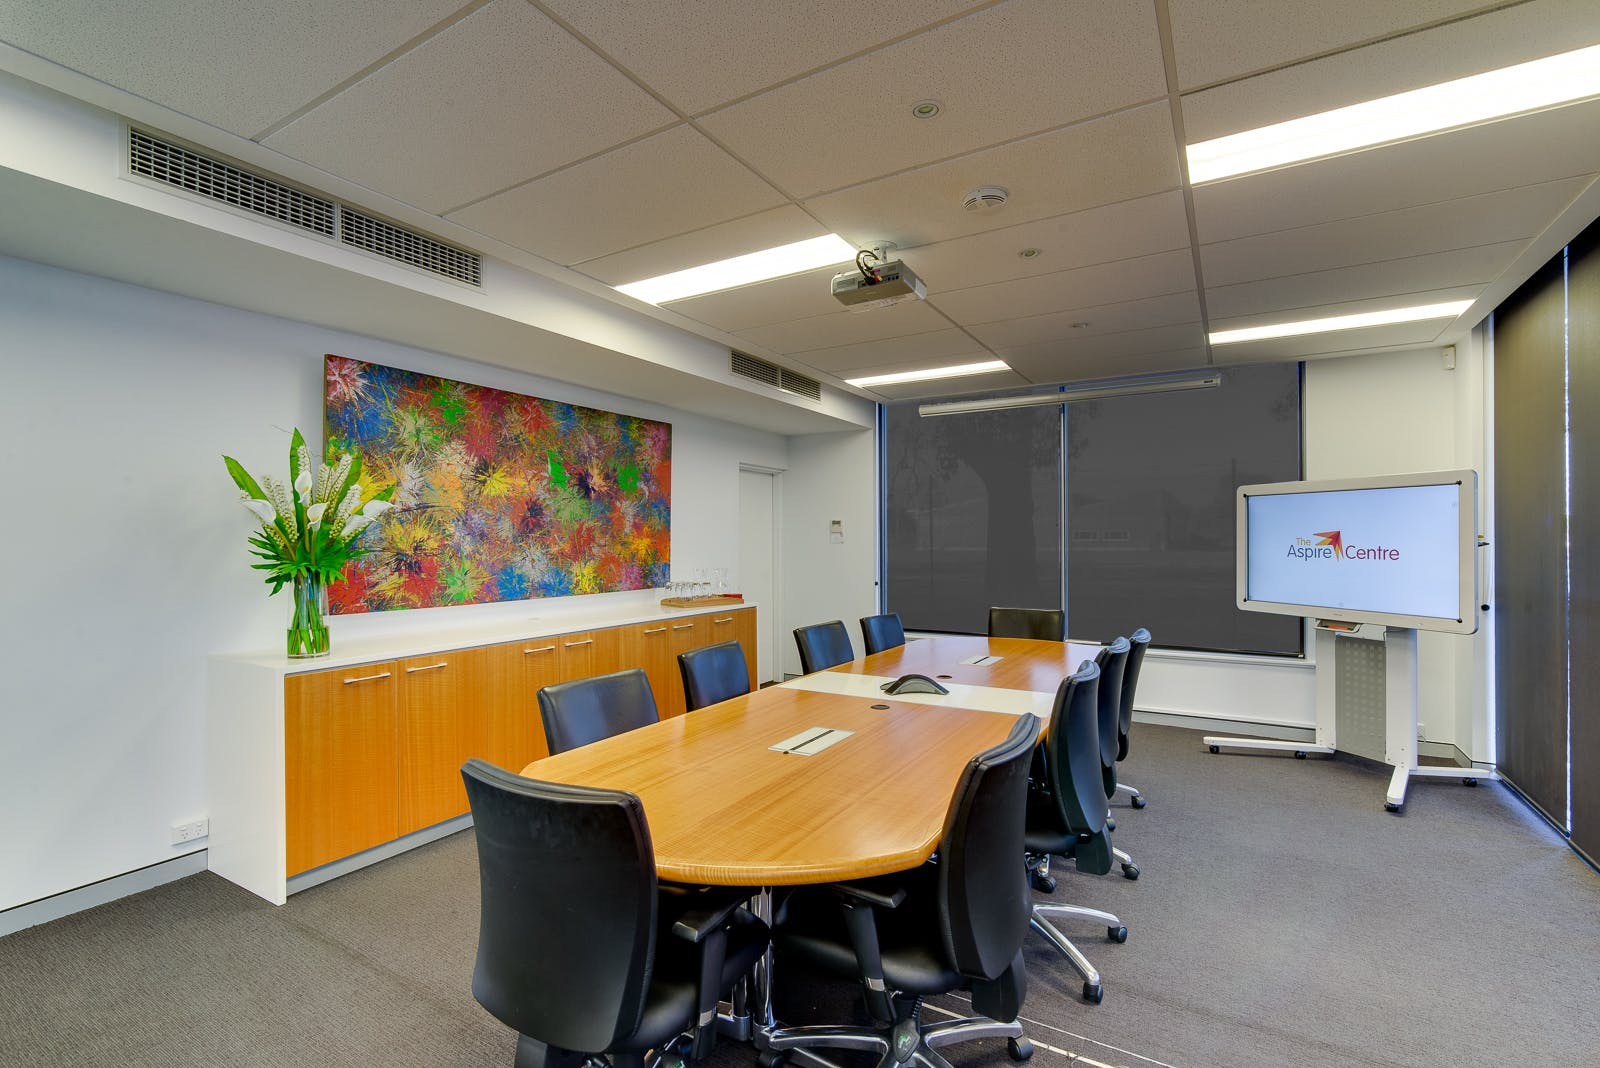 Office 10, serviced office at The Aspire Centre, image 2